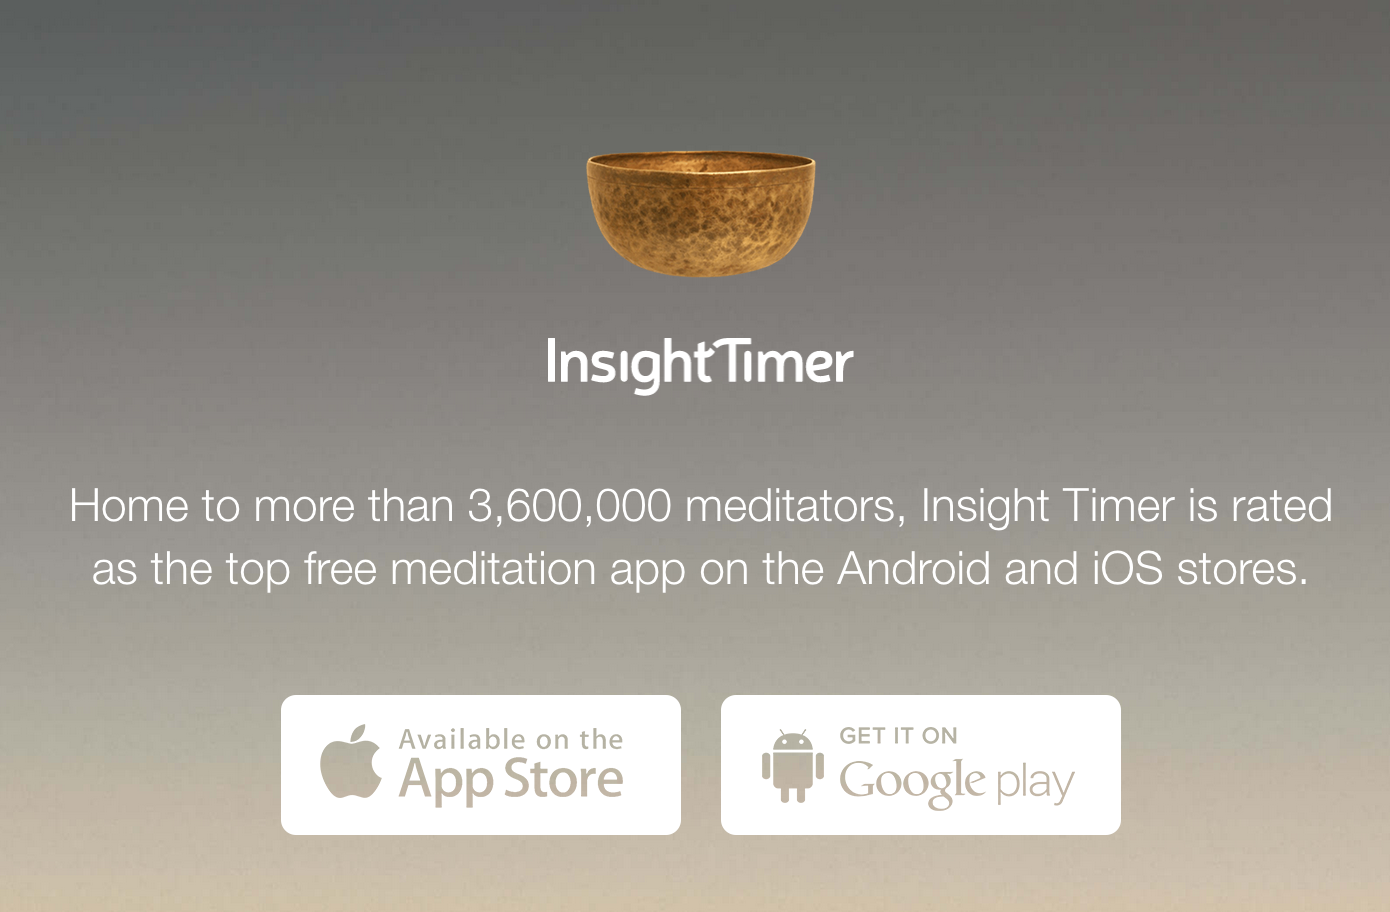 Insight timer app - This is the app we use most of the time when we meditate and we recommend it to those who are just started out or have taken the Primordial Sound Meditation course. Time your meditations, meditate with community, and listen to exceptional guided meditations and music. It's free!